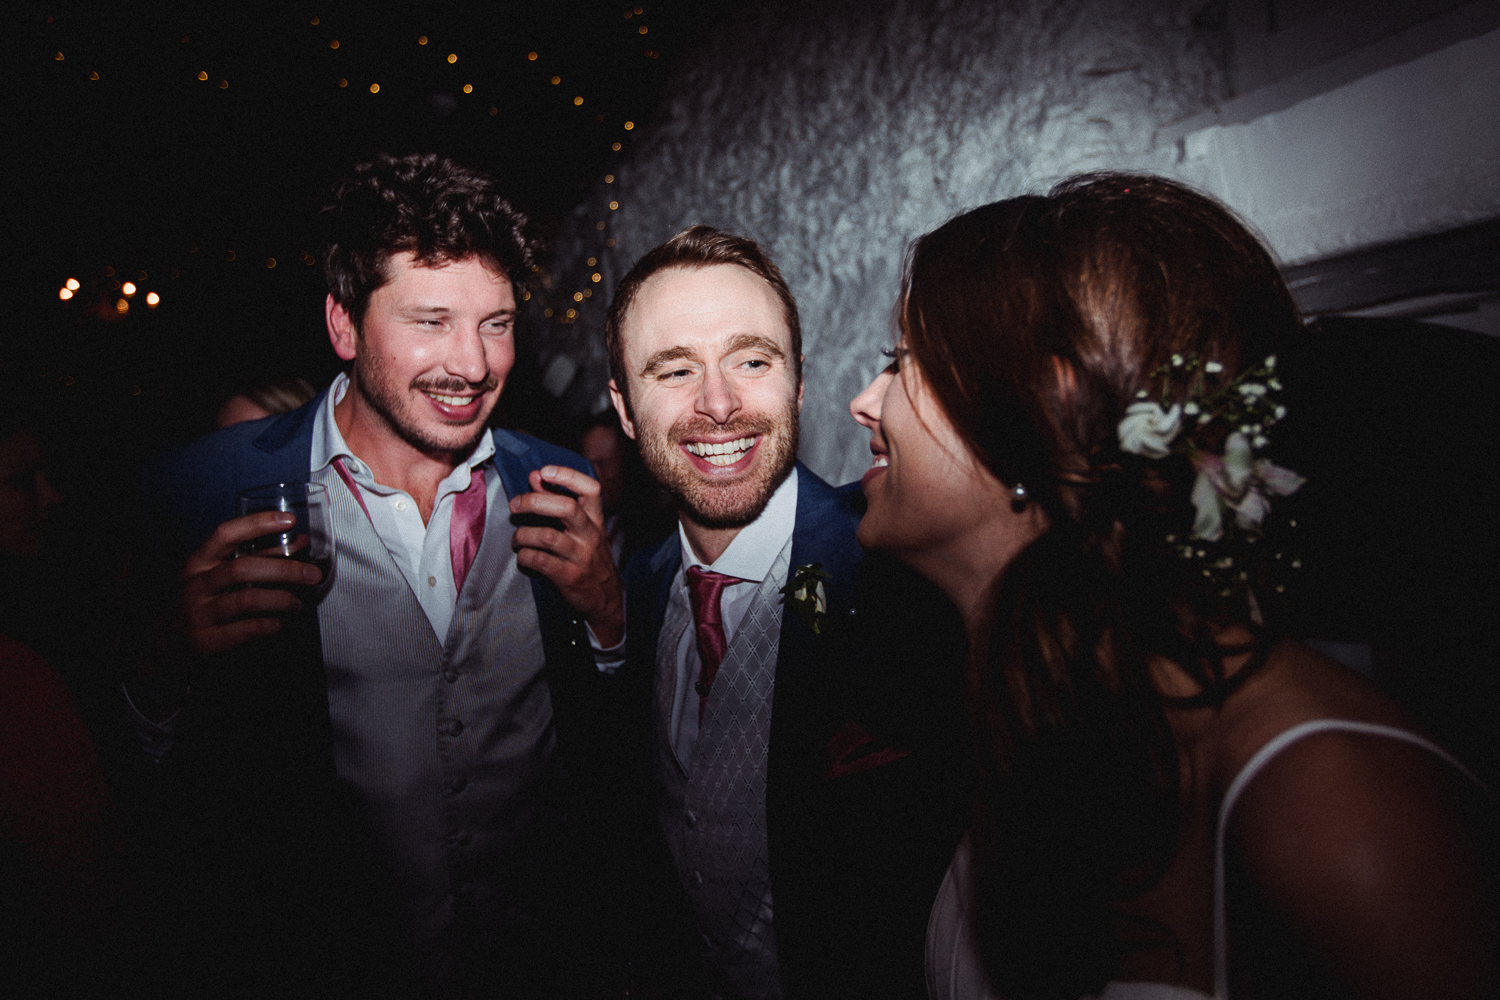 The_Old_Barn_North_Devon_Wedding_Photographer-66.jpg